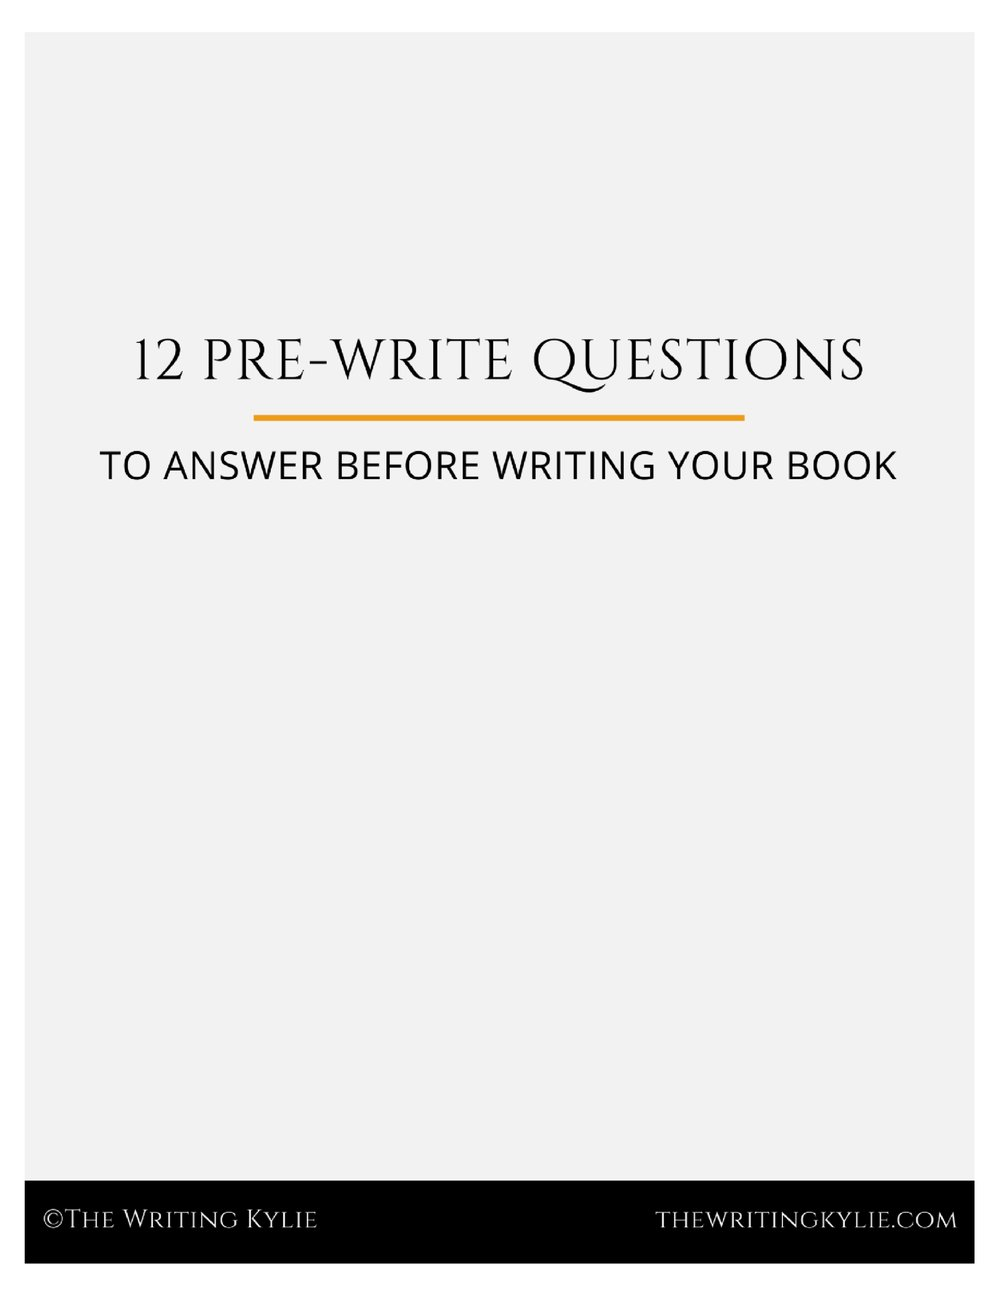 Download the  FREE 12 Pre-Write Questions  pdf!